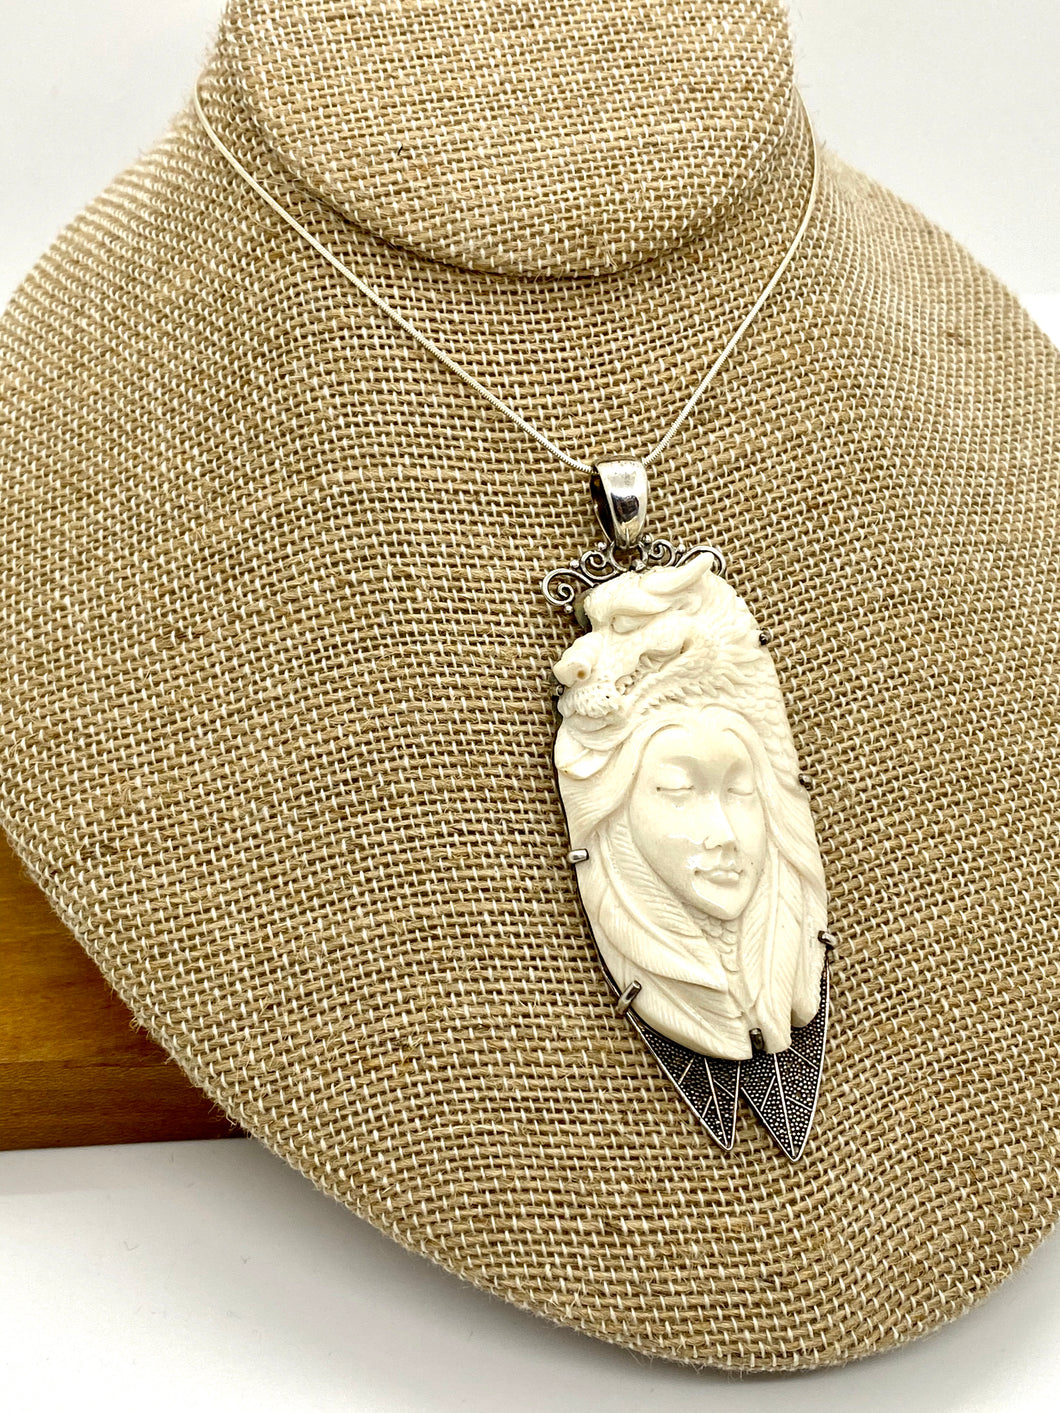 Carved Woman and Dragon Sterling Silver Pendant